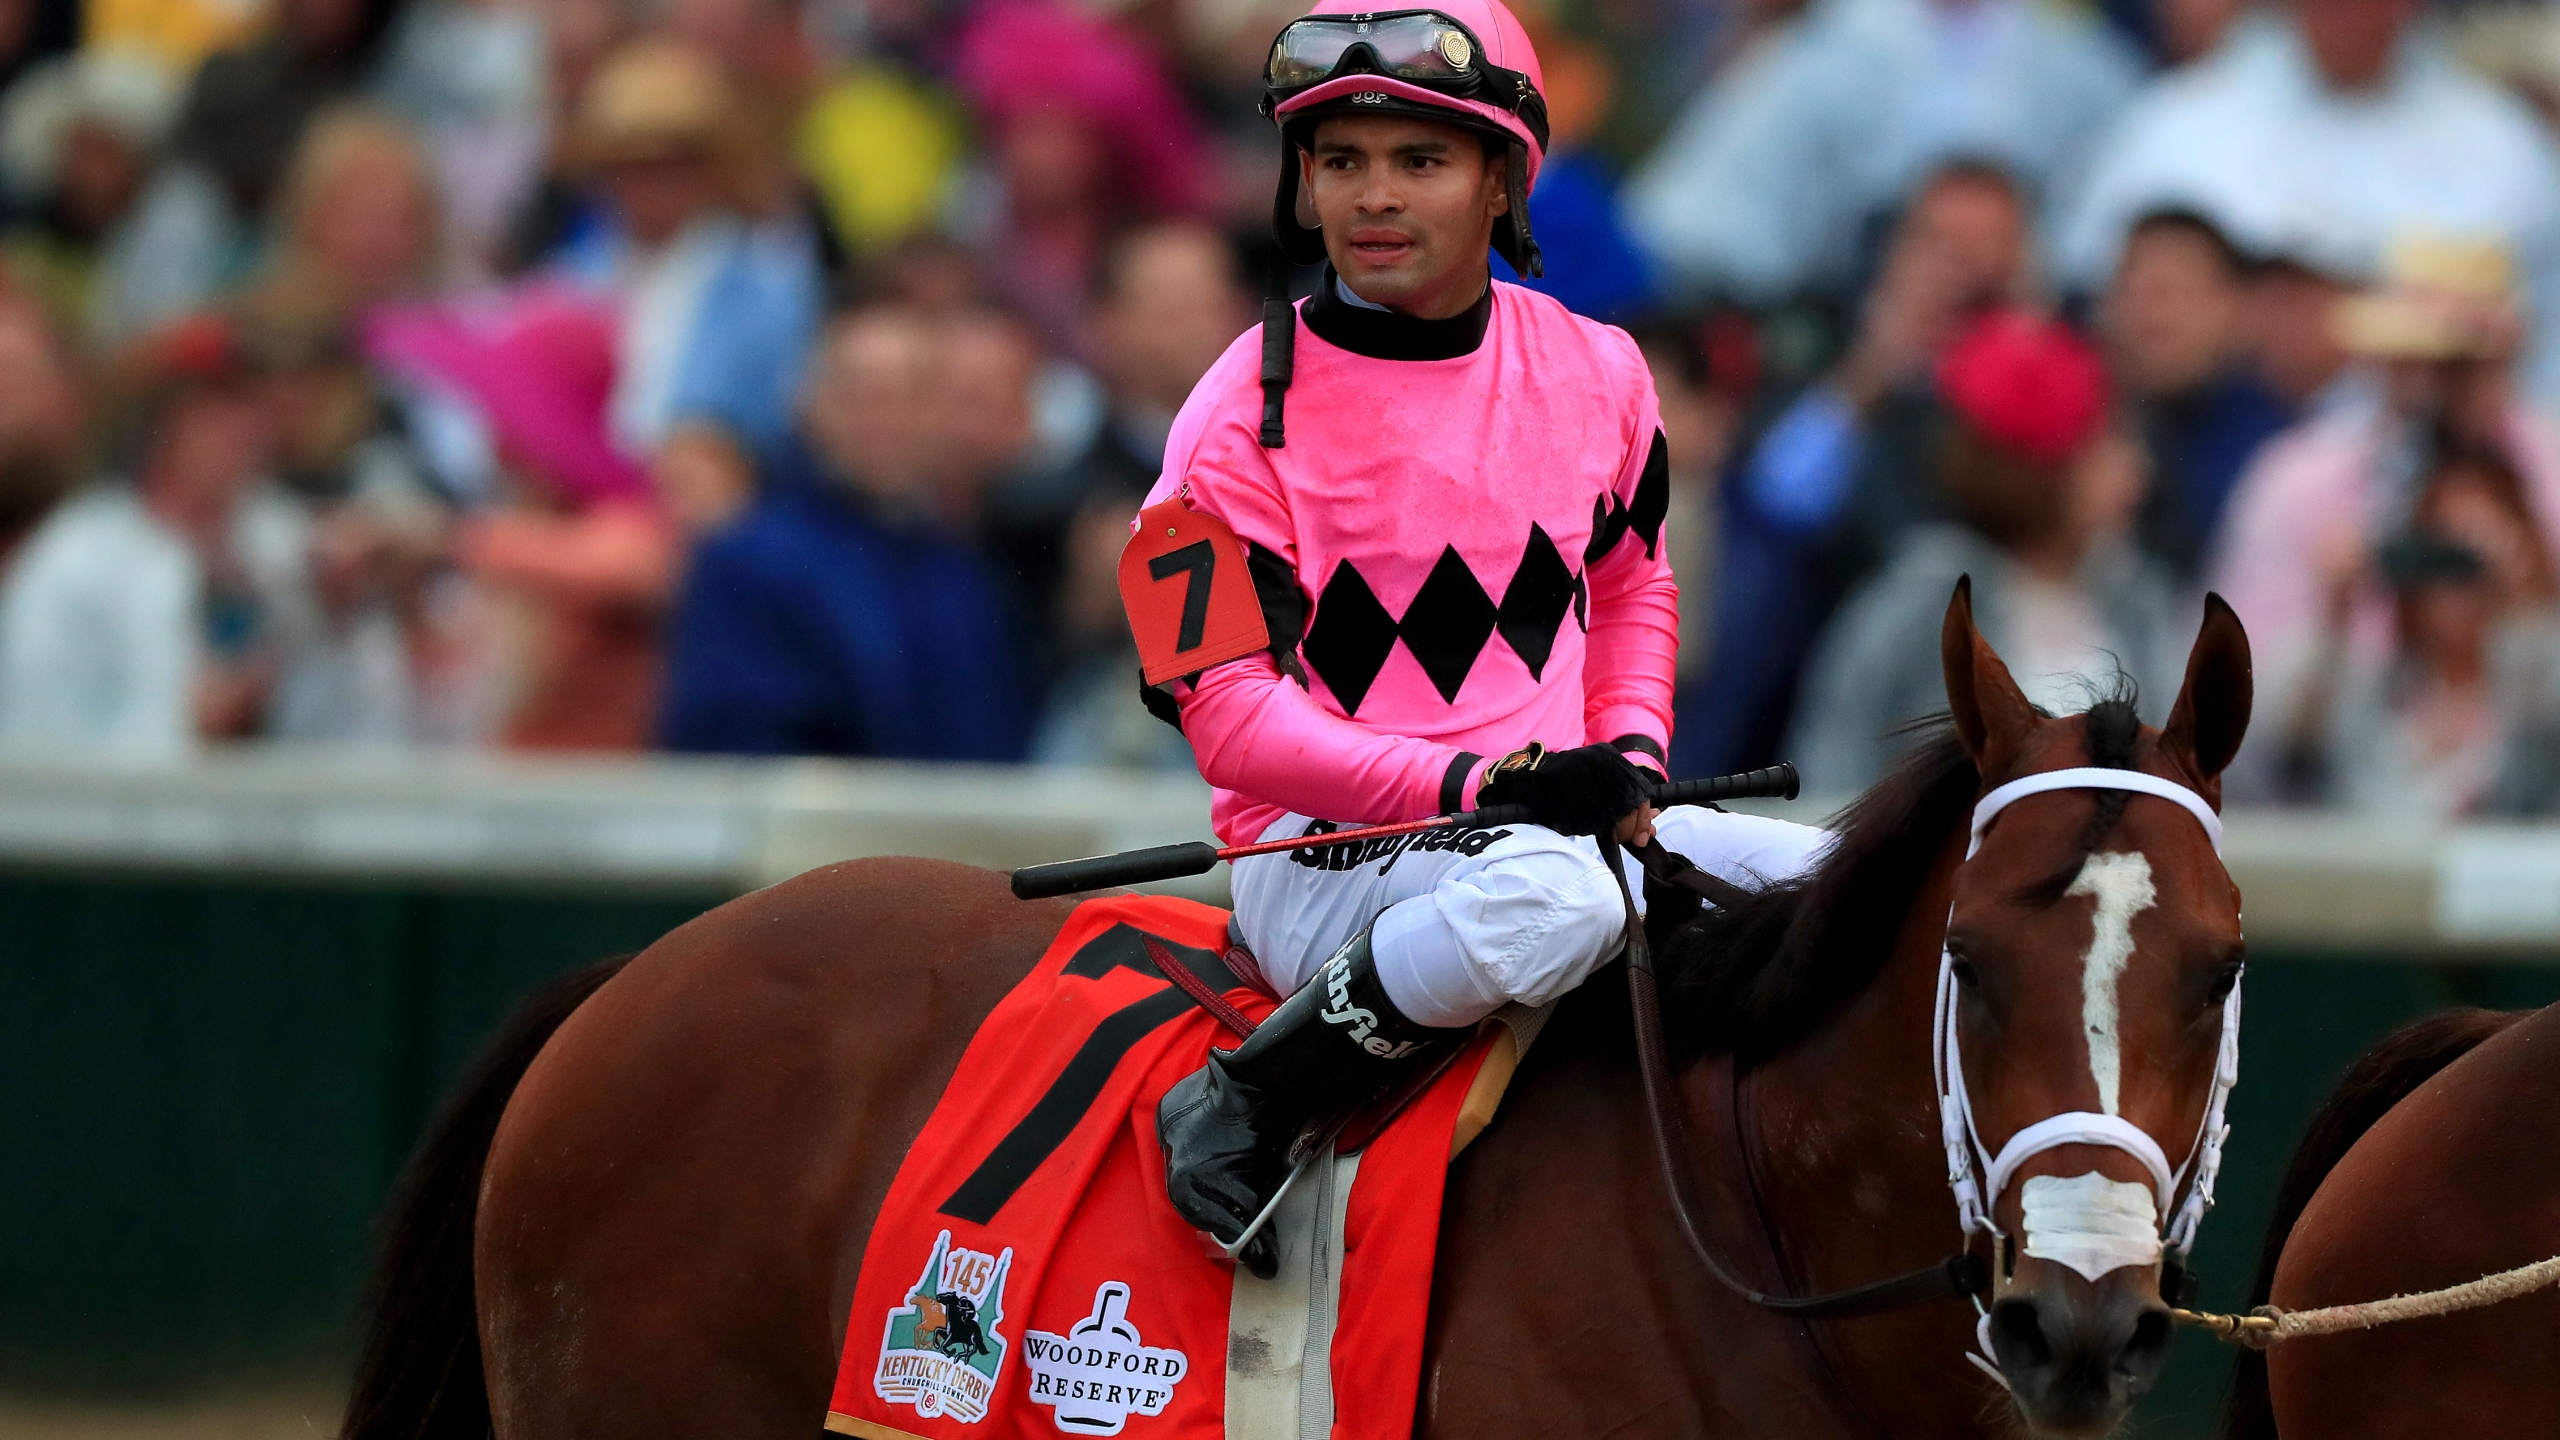 Luis Saez, the jockey for horse Maximum Security reacts after the 145th running of the Kentucky Derby at Churchill Downs on May 04, 2019 in Louisville, Kentucky. (Credit: Tom Pennington/Getty Images)